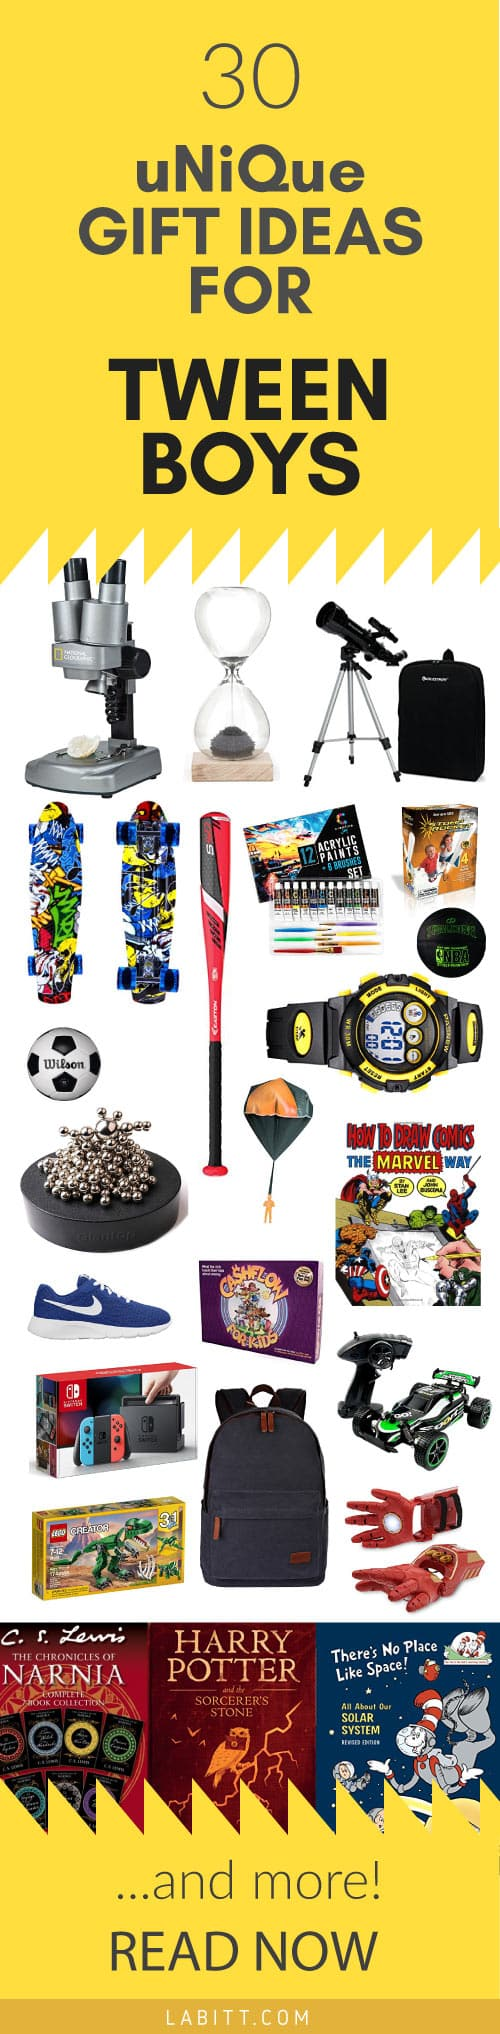 What do you think of these Gift Ideas for Tween Boys?